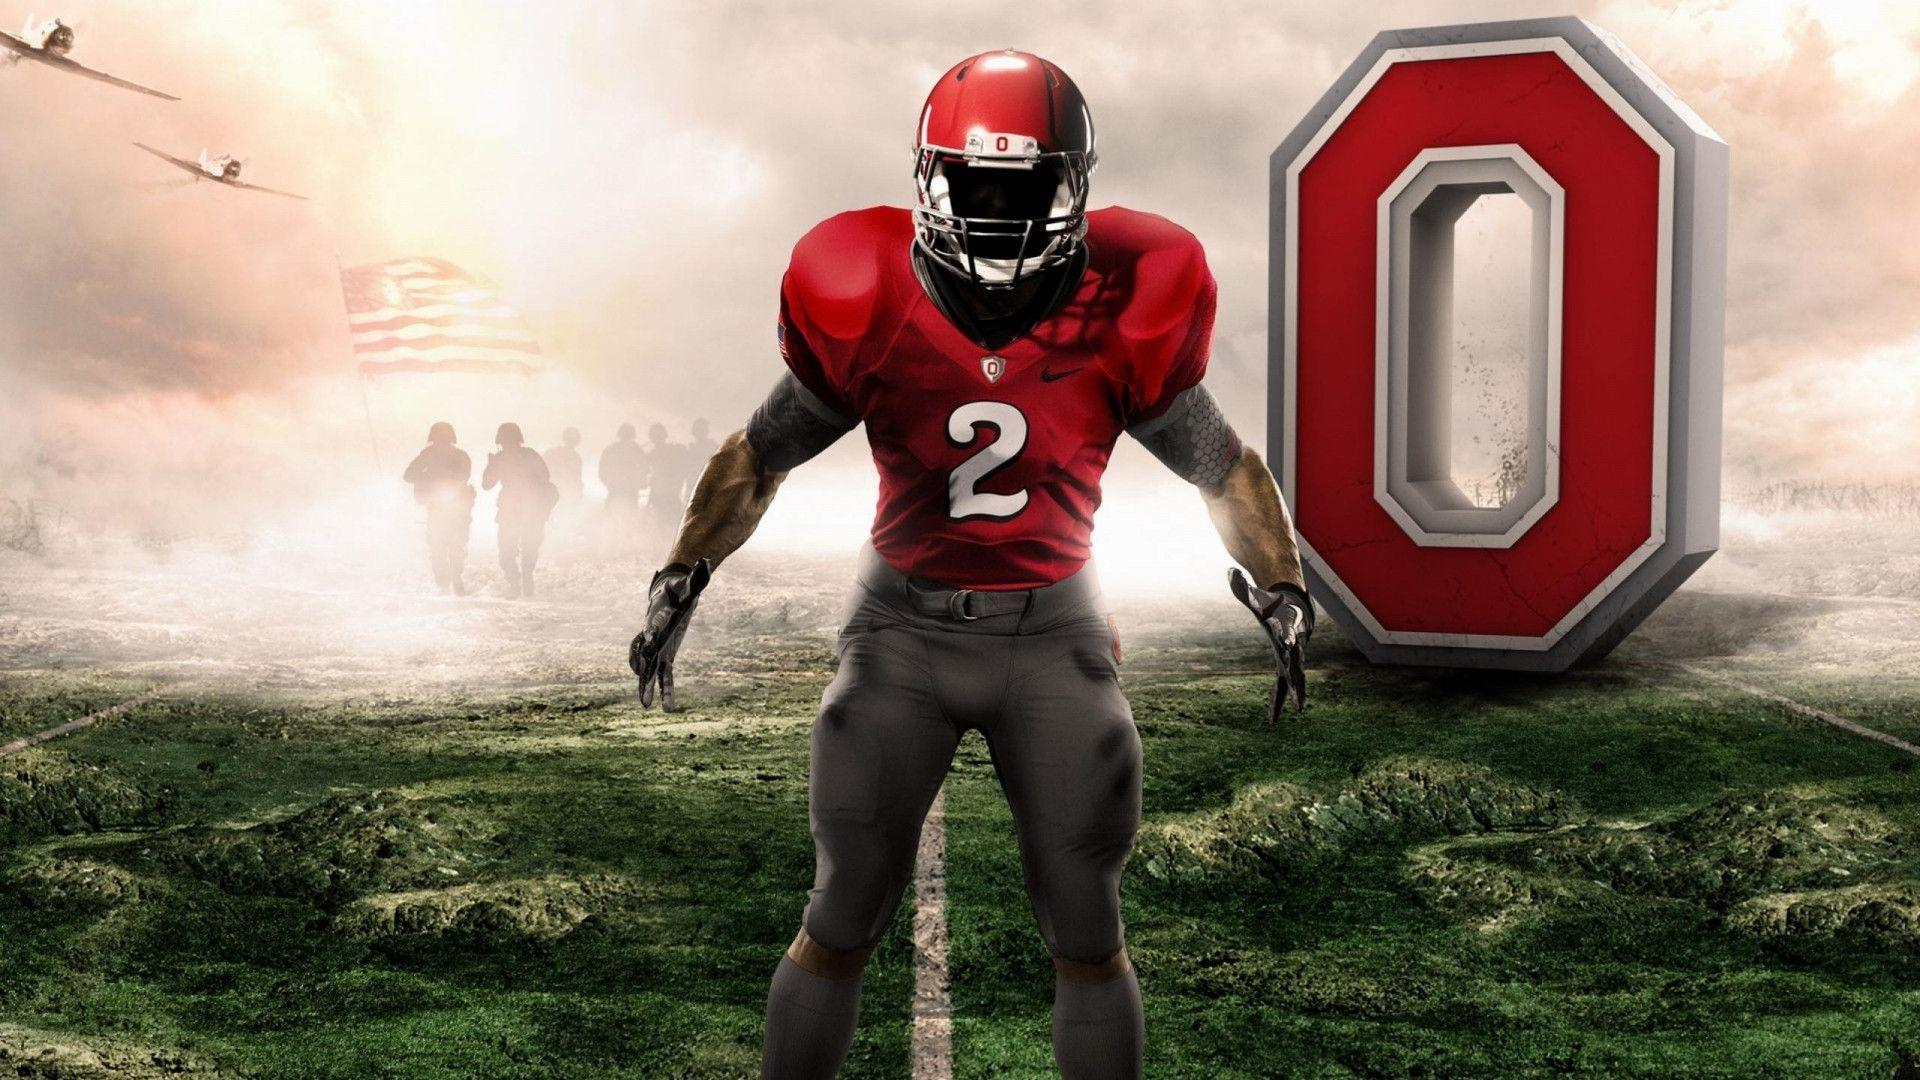 Nike College Football Picture Wallpaper HD